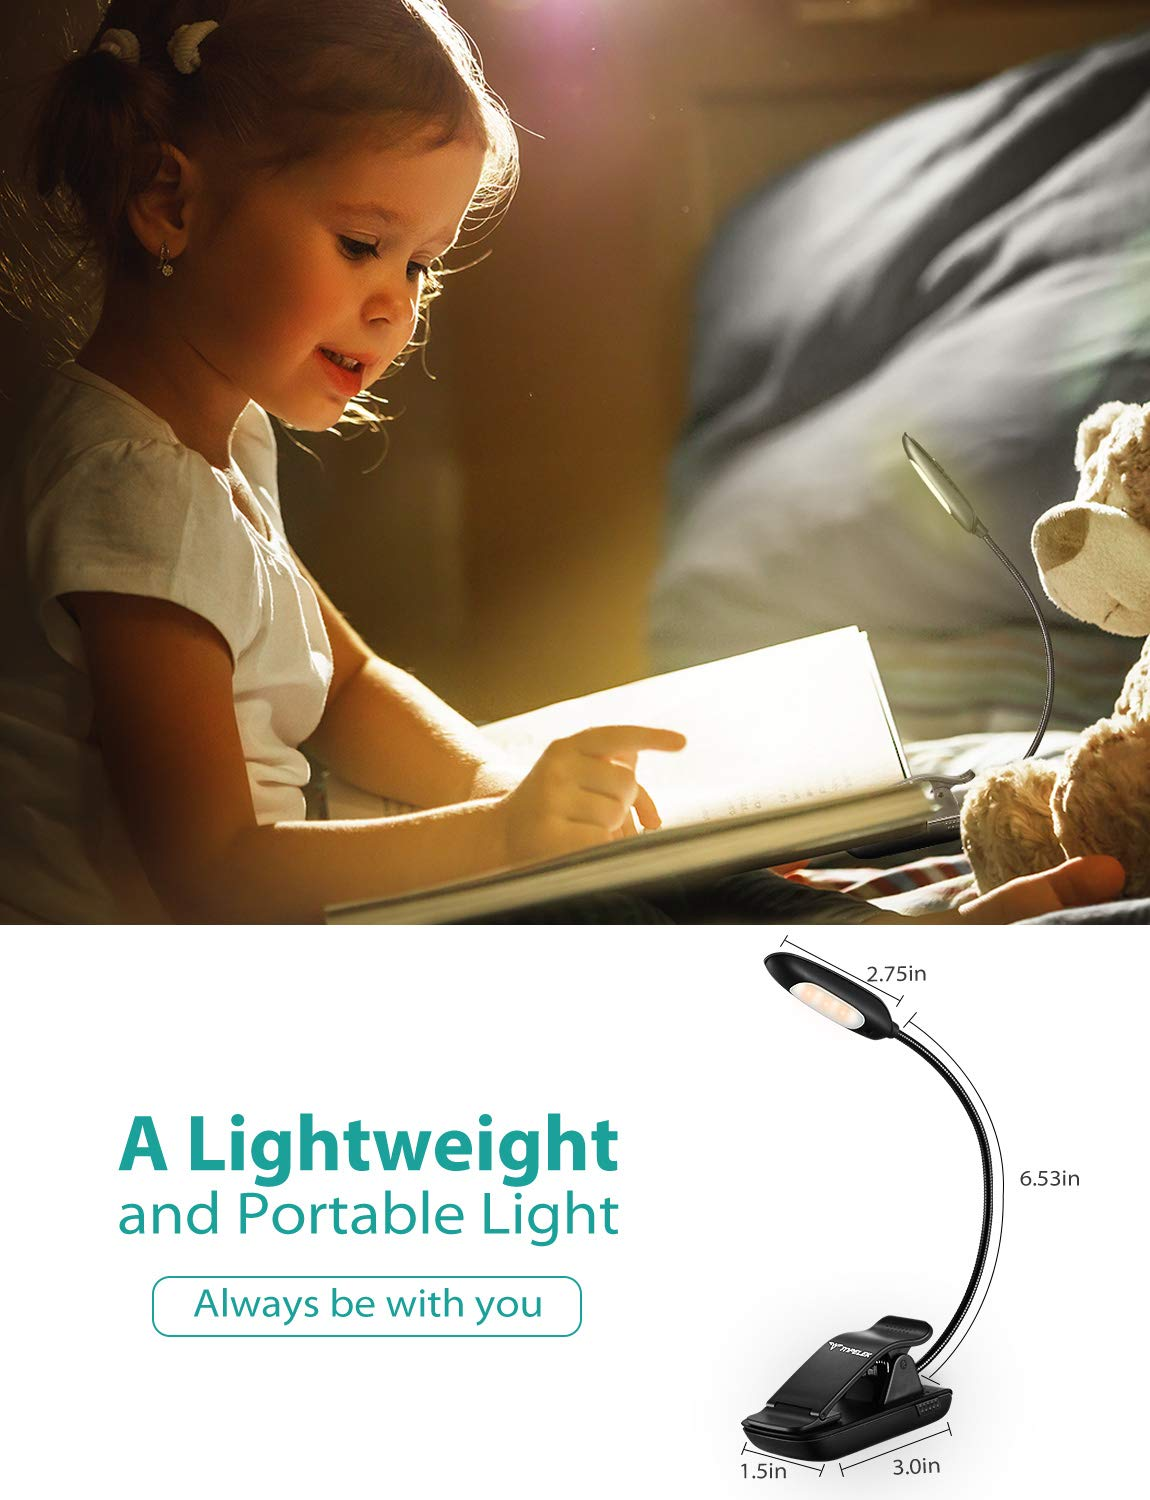 TopElek Reading Light, 7 LED Book Light with 9-Level Warm/Cool White Brightness, USB Rechargeable, Eye Care Lamp with Power Indicator, Perfect for Bookworms, Kids by TOPELEK (Image #7)